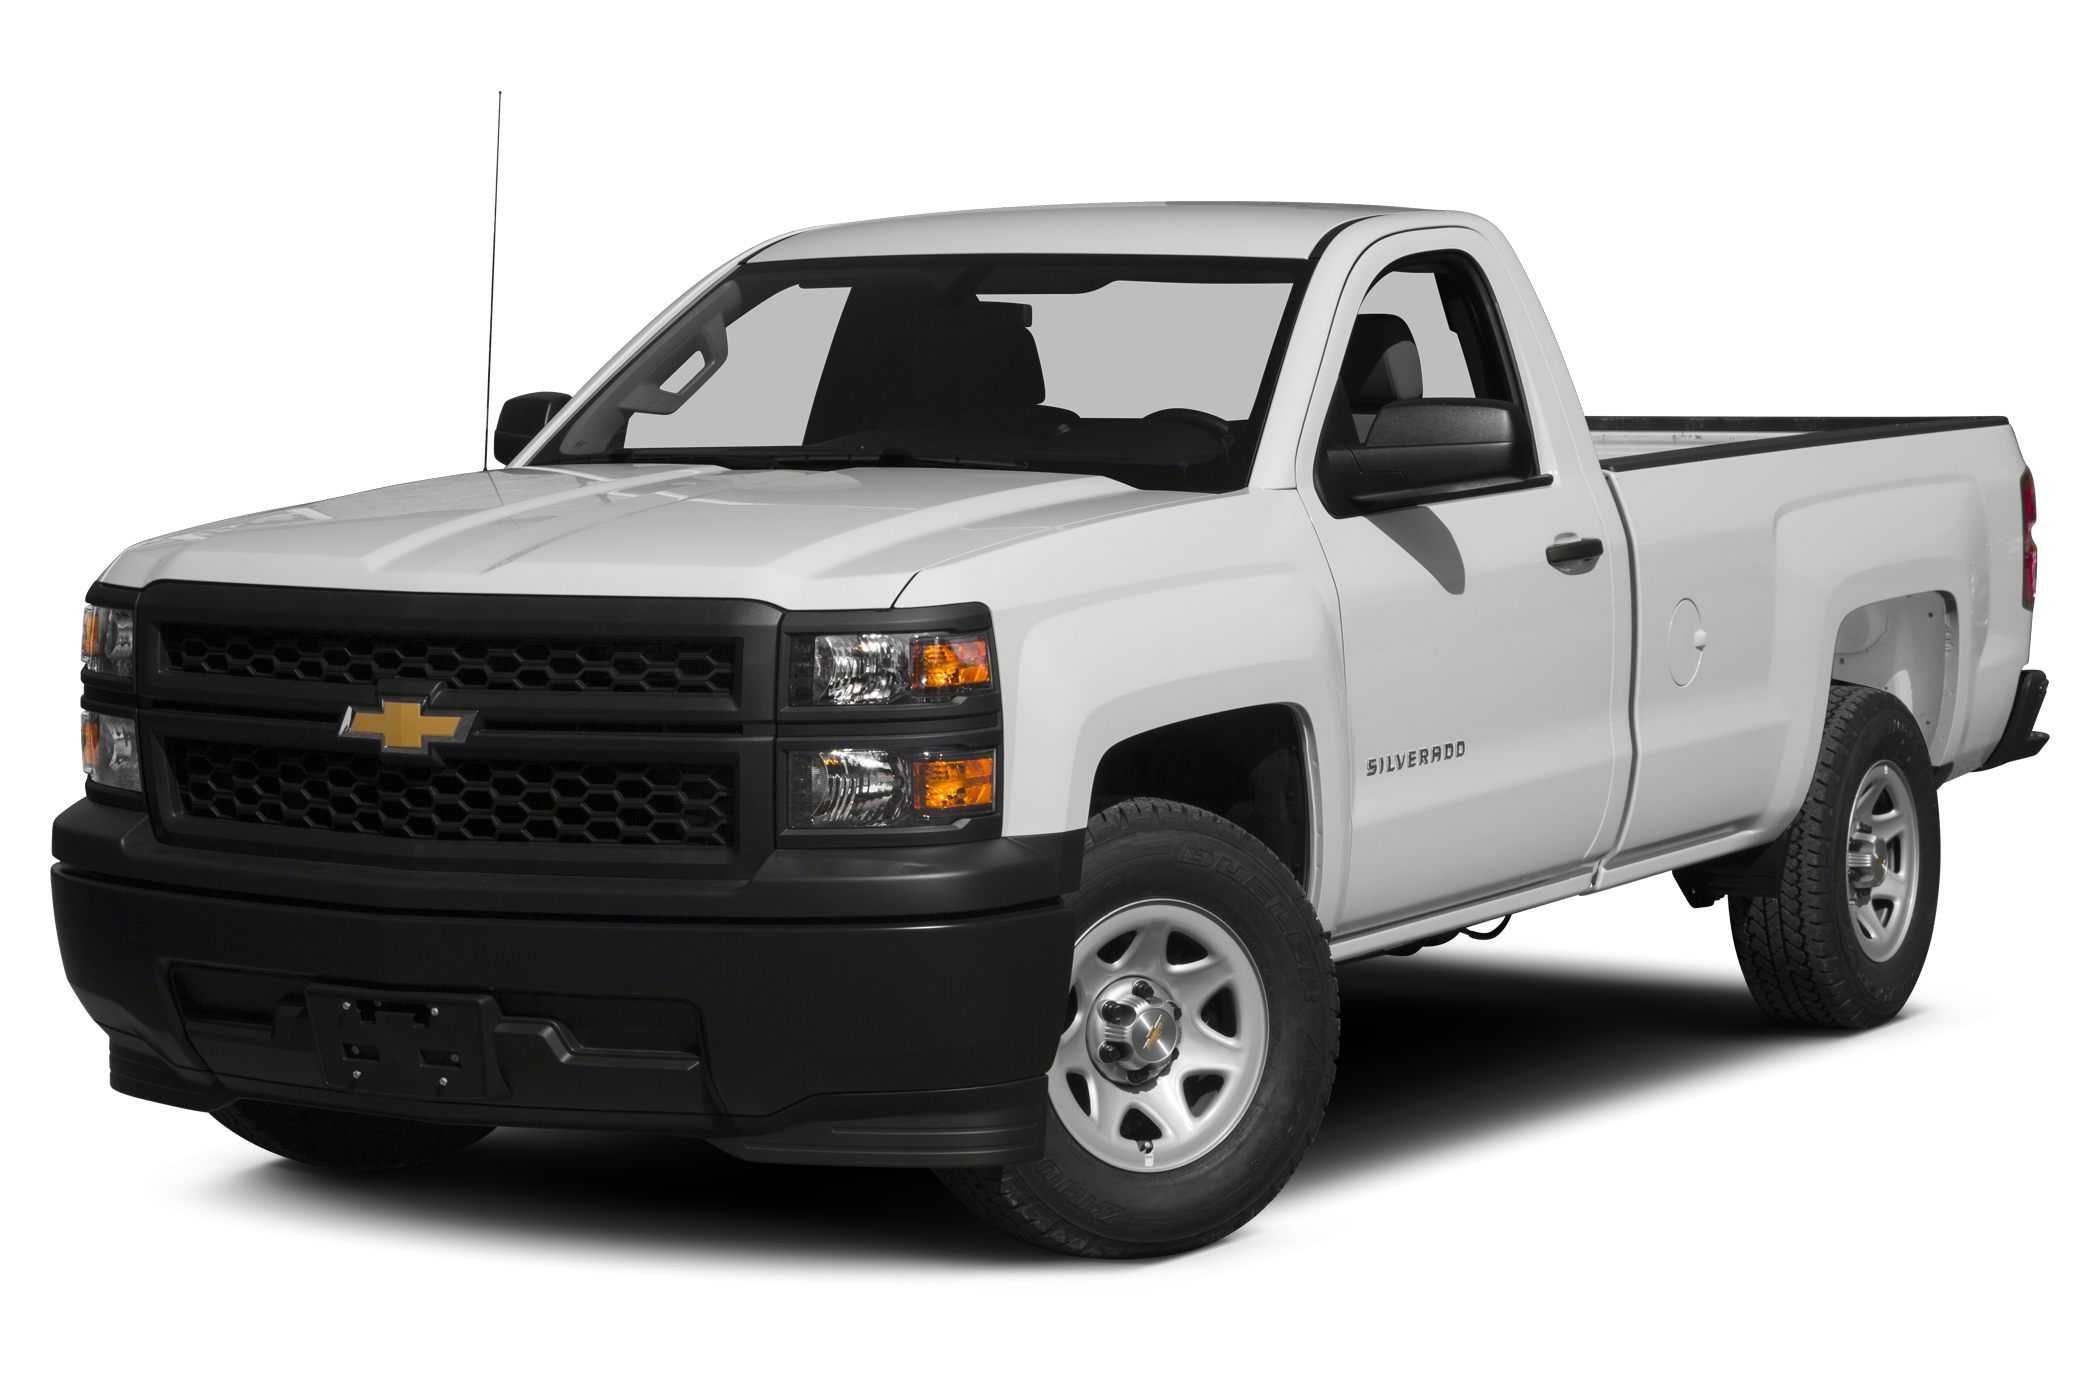 2015 Chevrolet Silverado 1500 1LT Crew Cab Pickup for sale in Baton Rouge for $0 with 33,025 miles